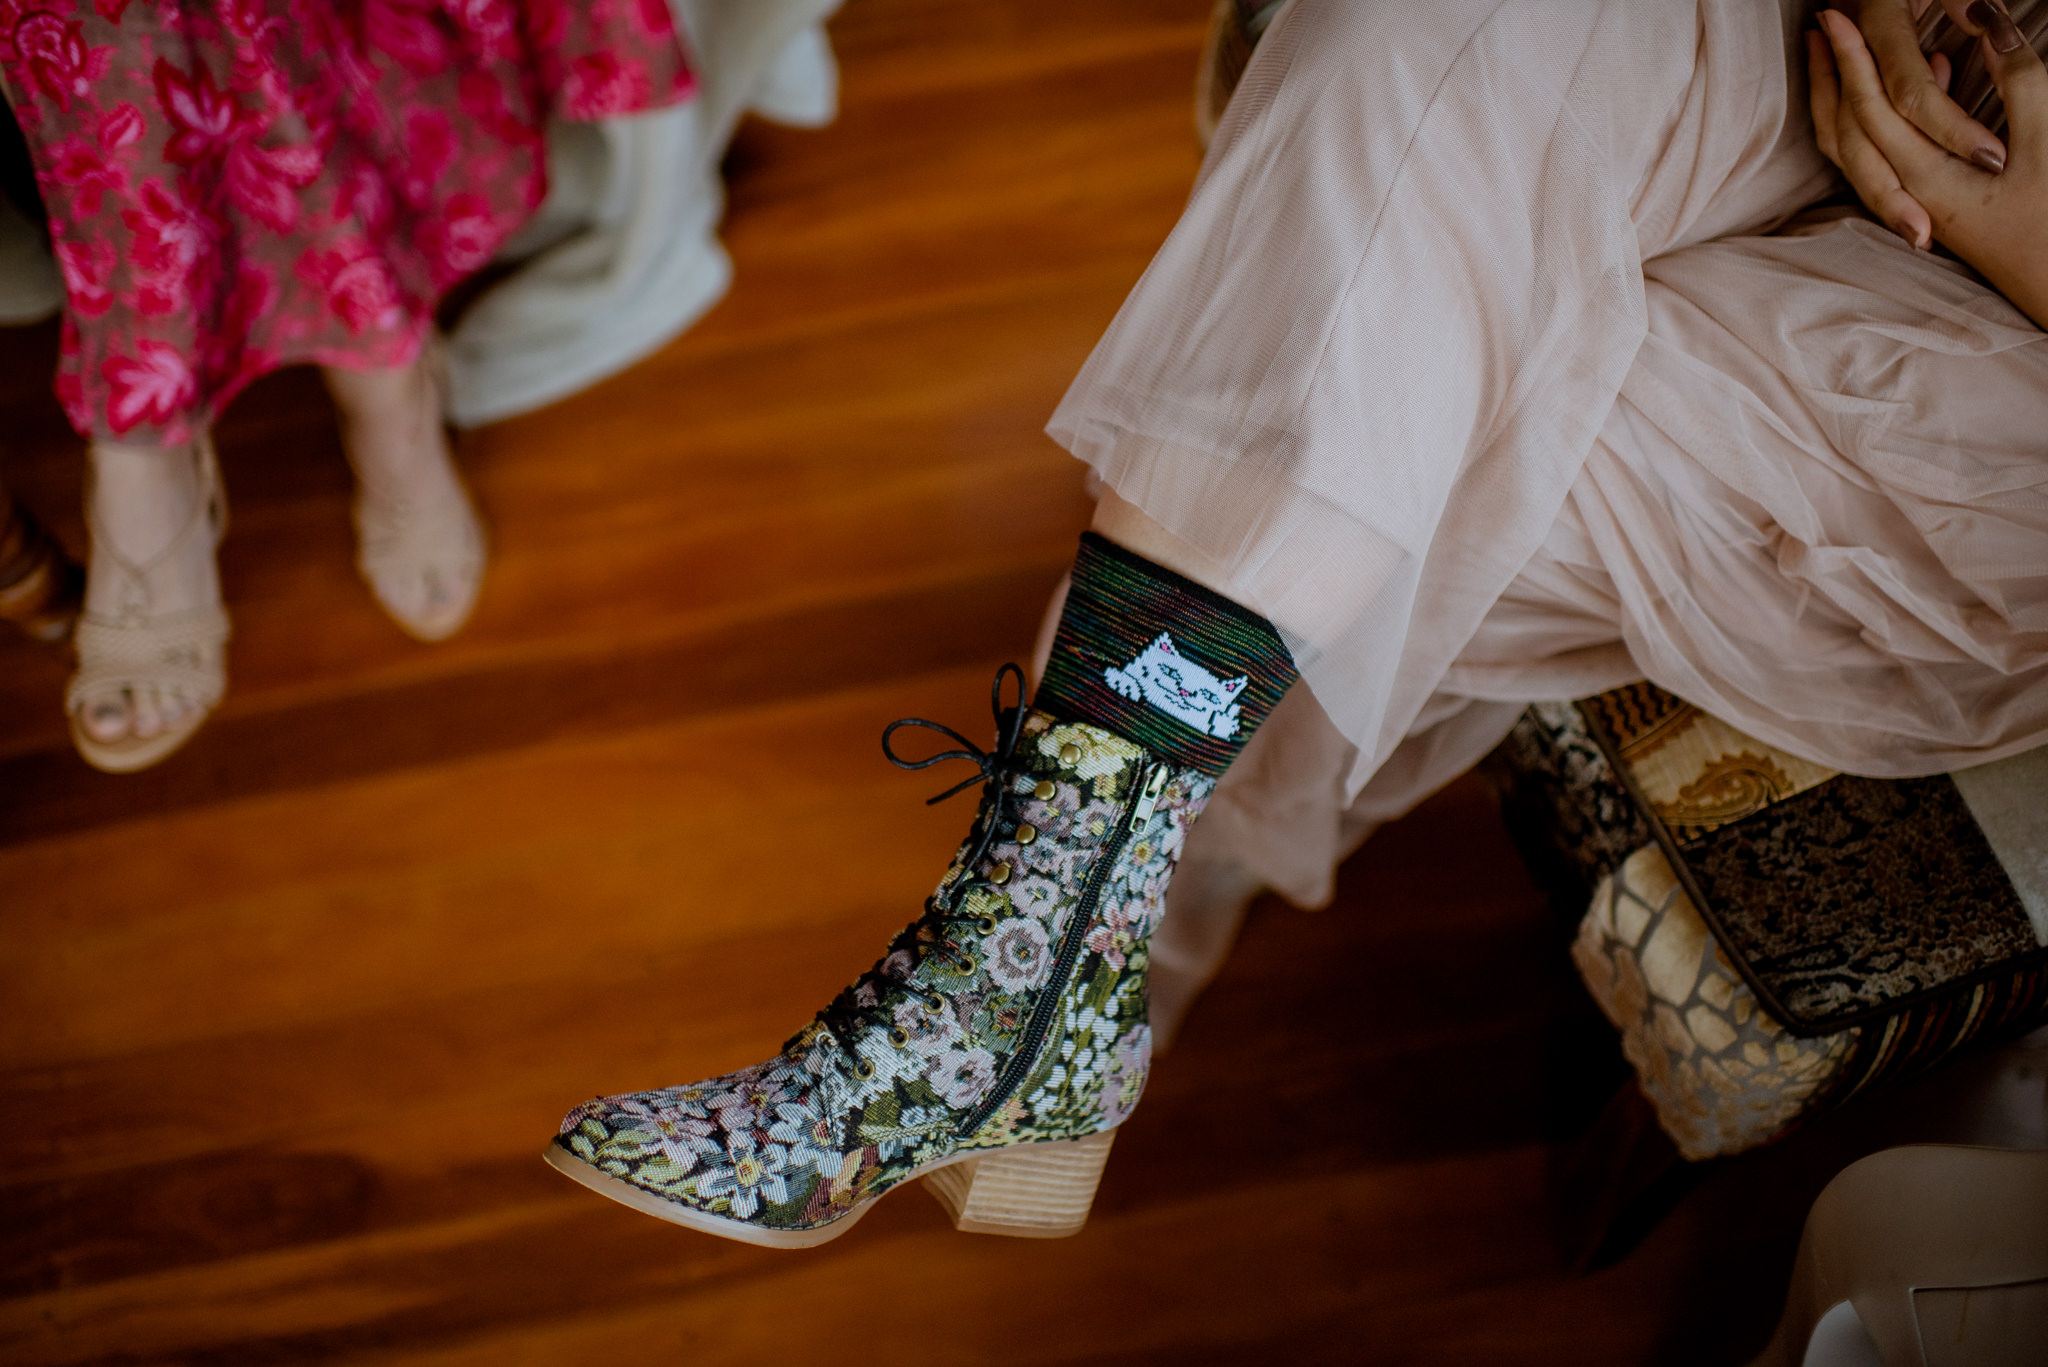 Closeup of flowery print boots and cat socks on someone's leg